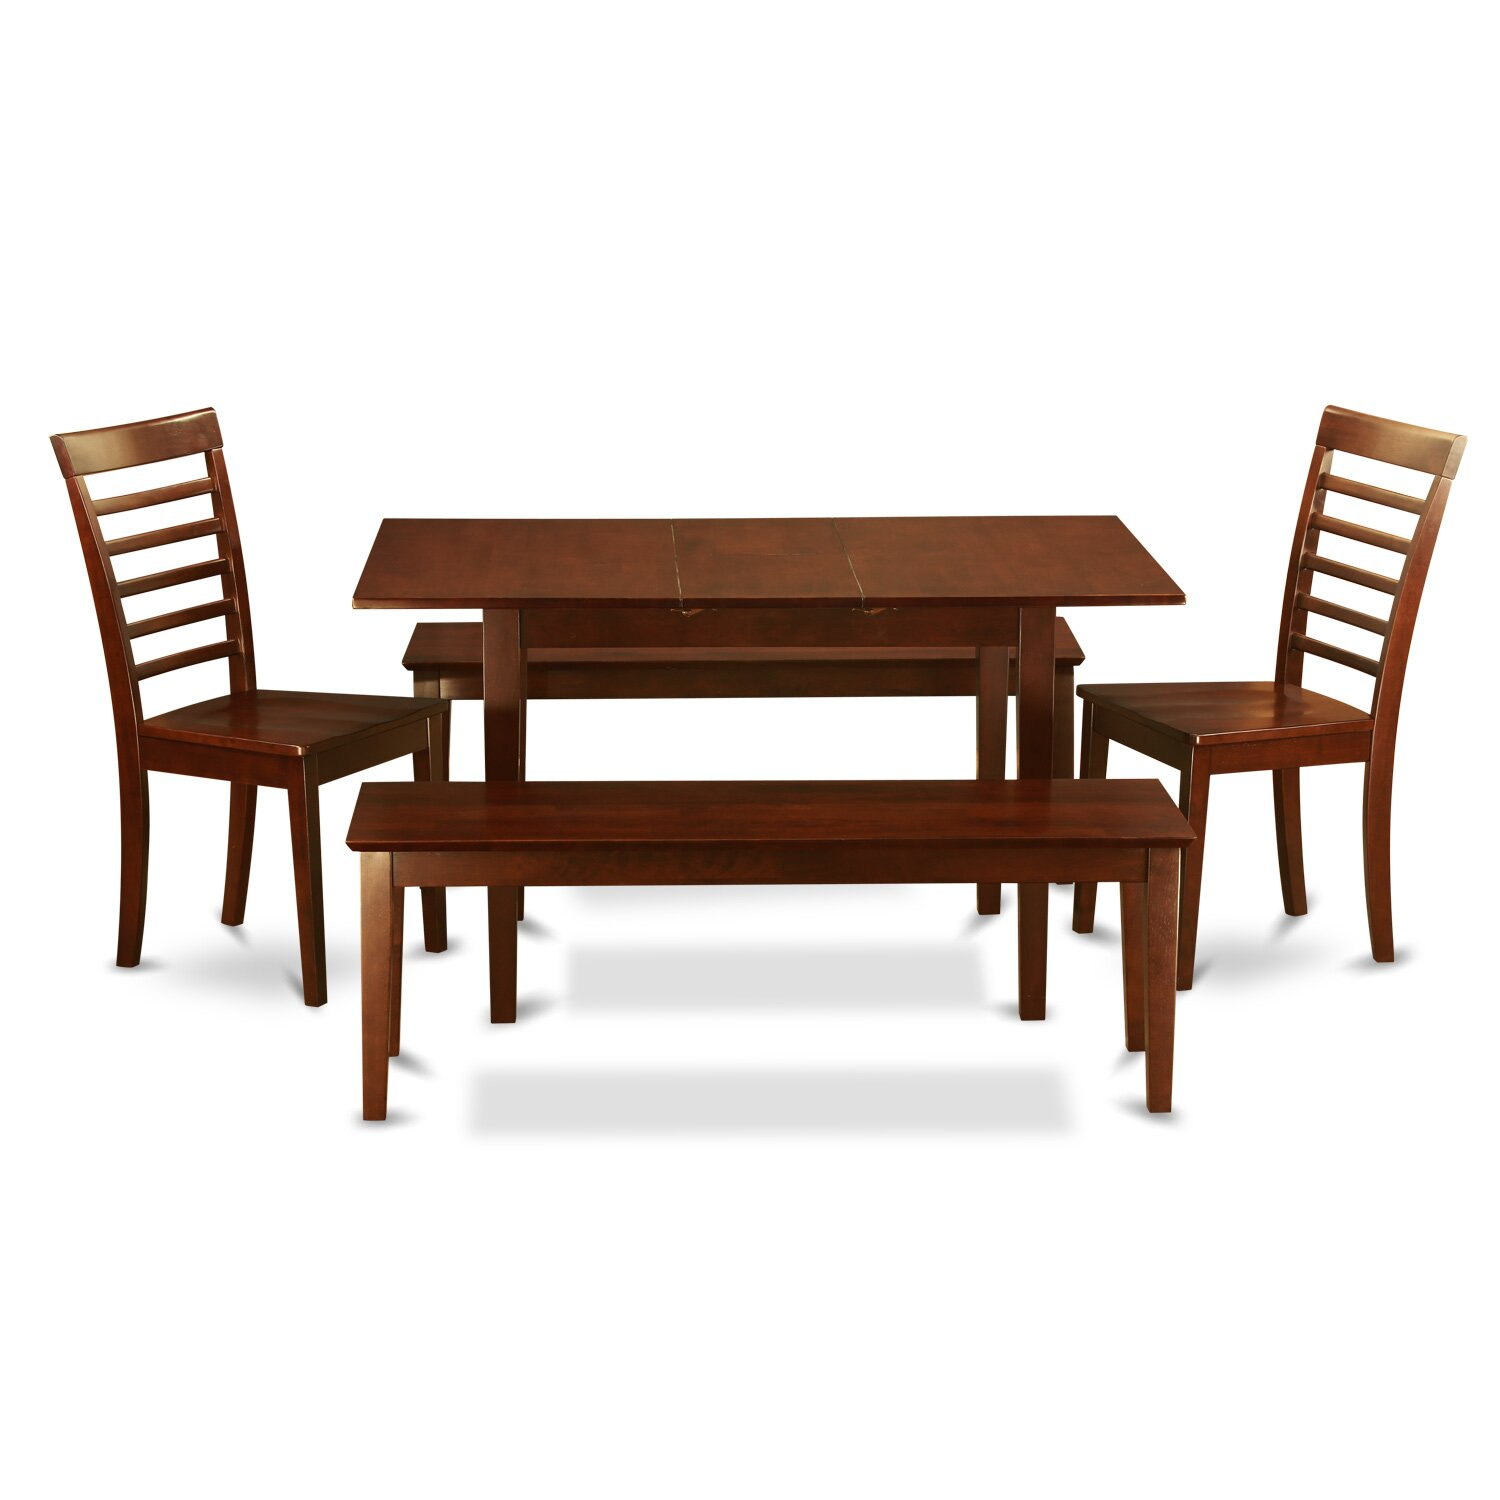 East west norfolk 5 piece dining set reviews wayfair for Furniture 2 day shipping